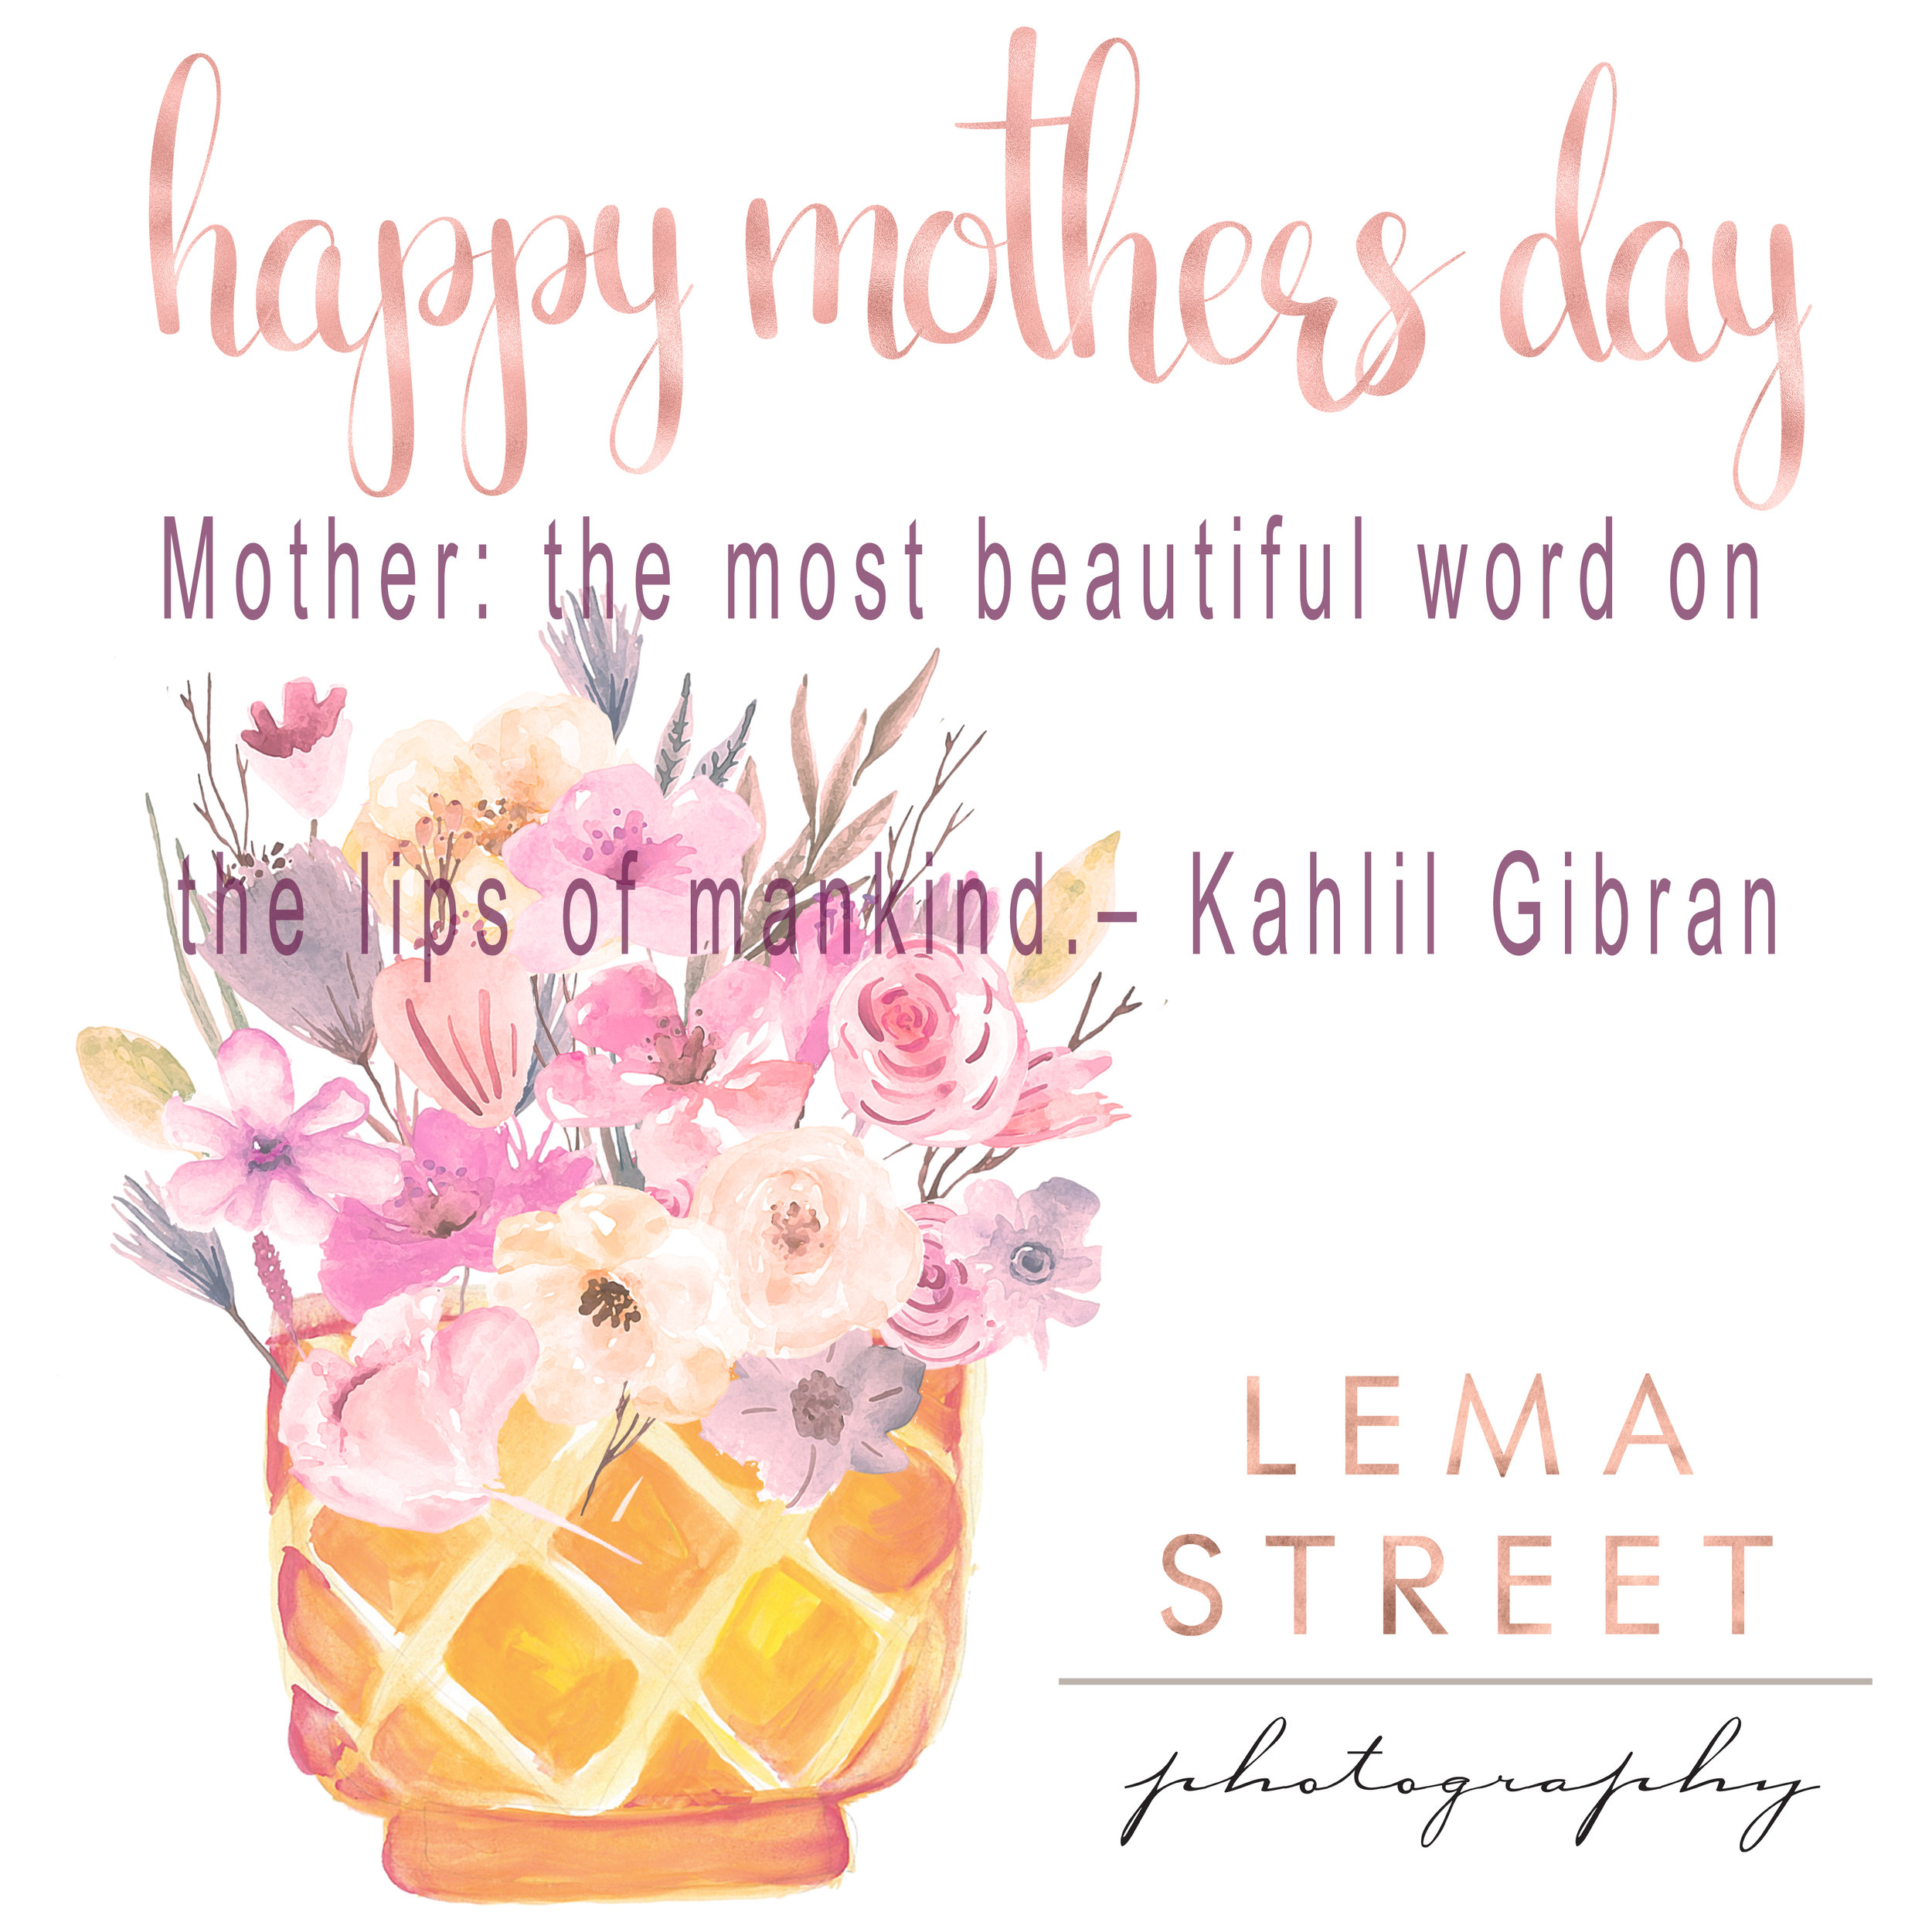 All of at Lema Street Photography wish you a Happy Mother's Day.